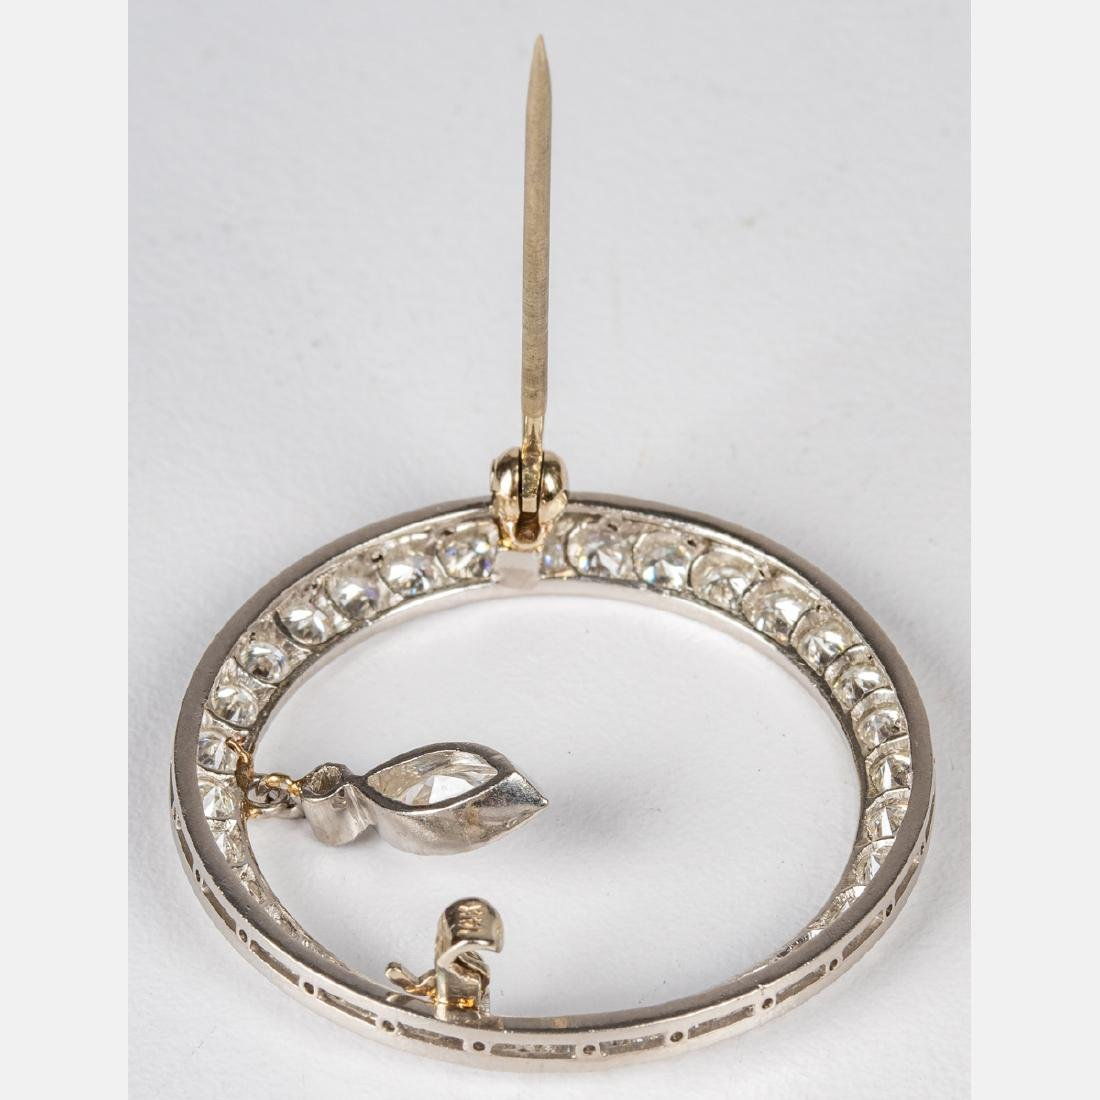 A 14kt. White Gold and Diamond Circular Brooch, - 3